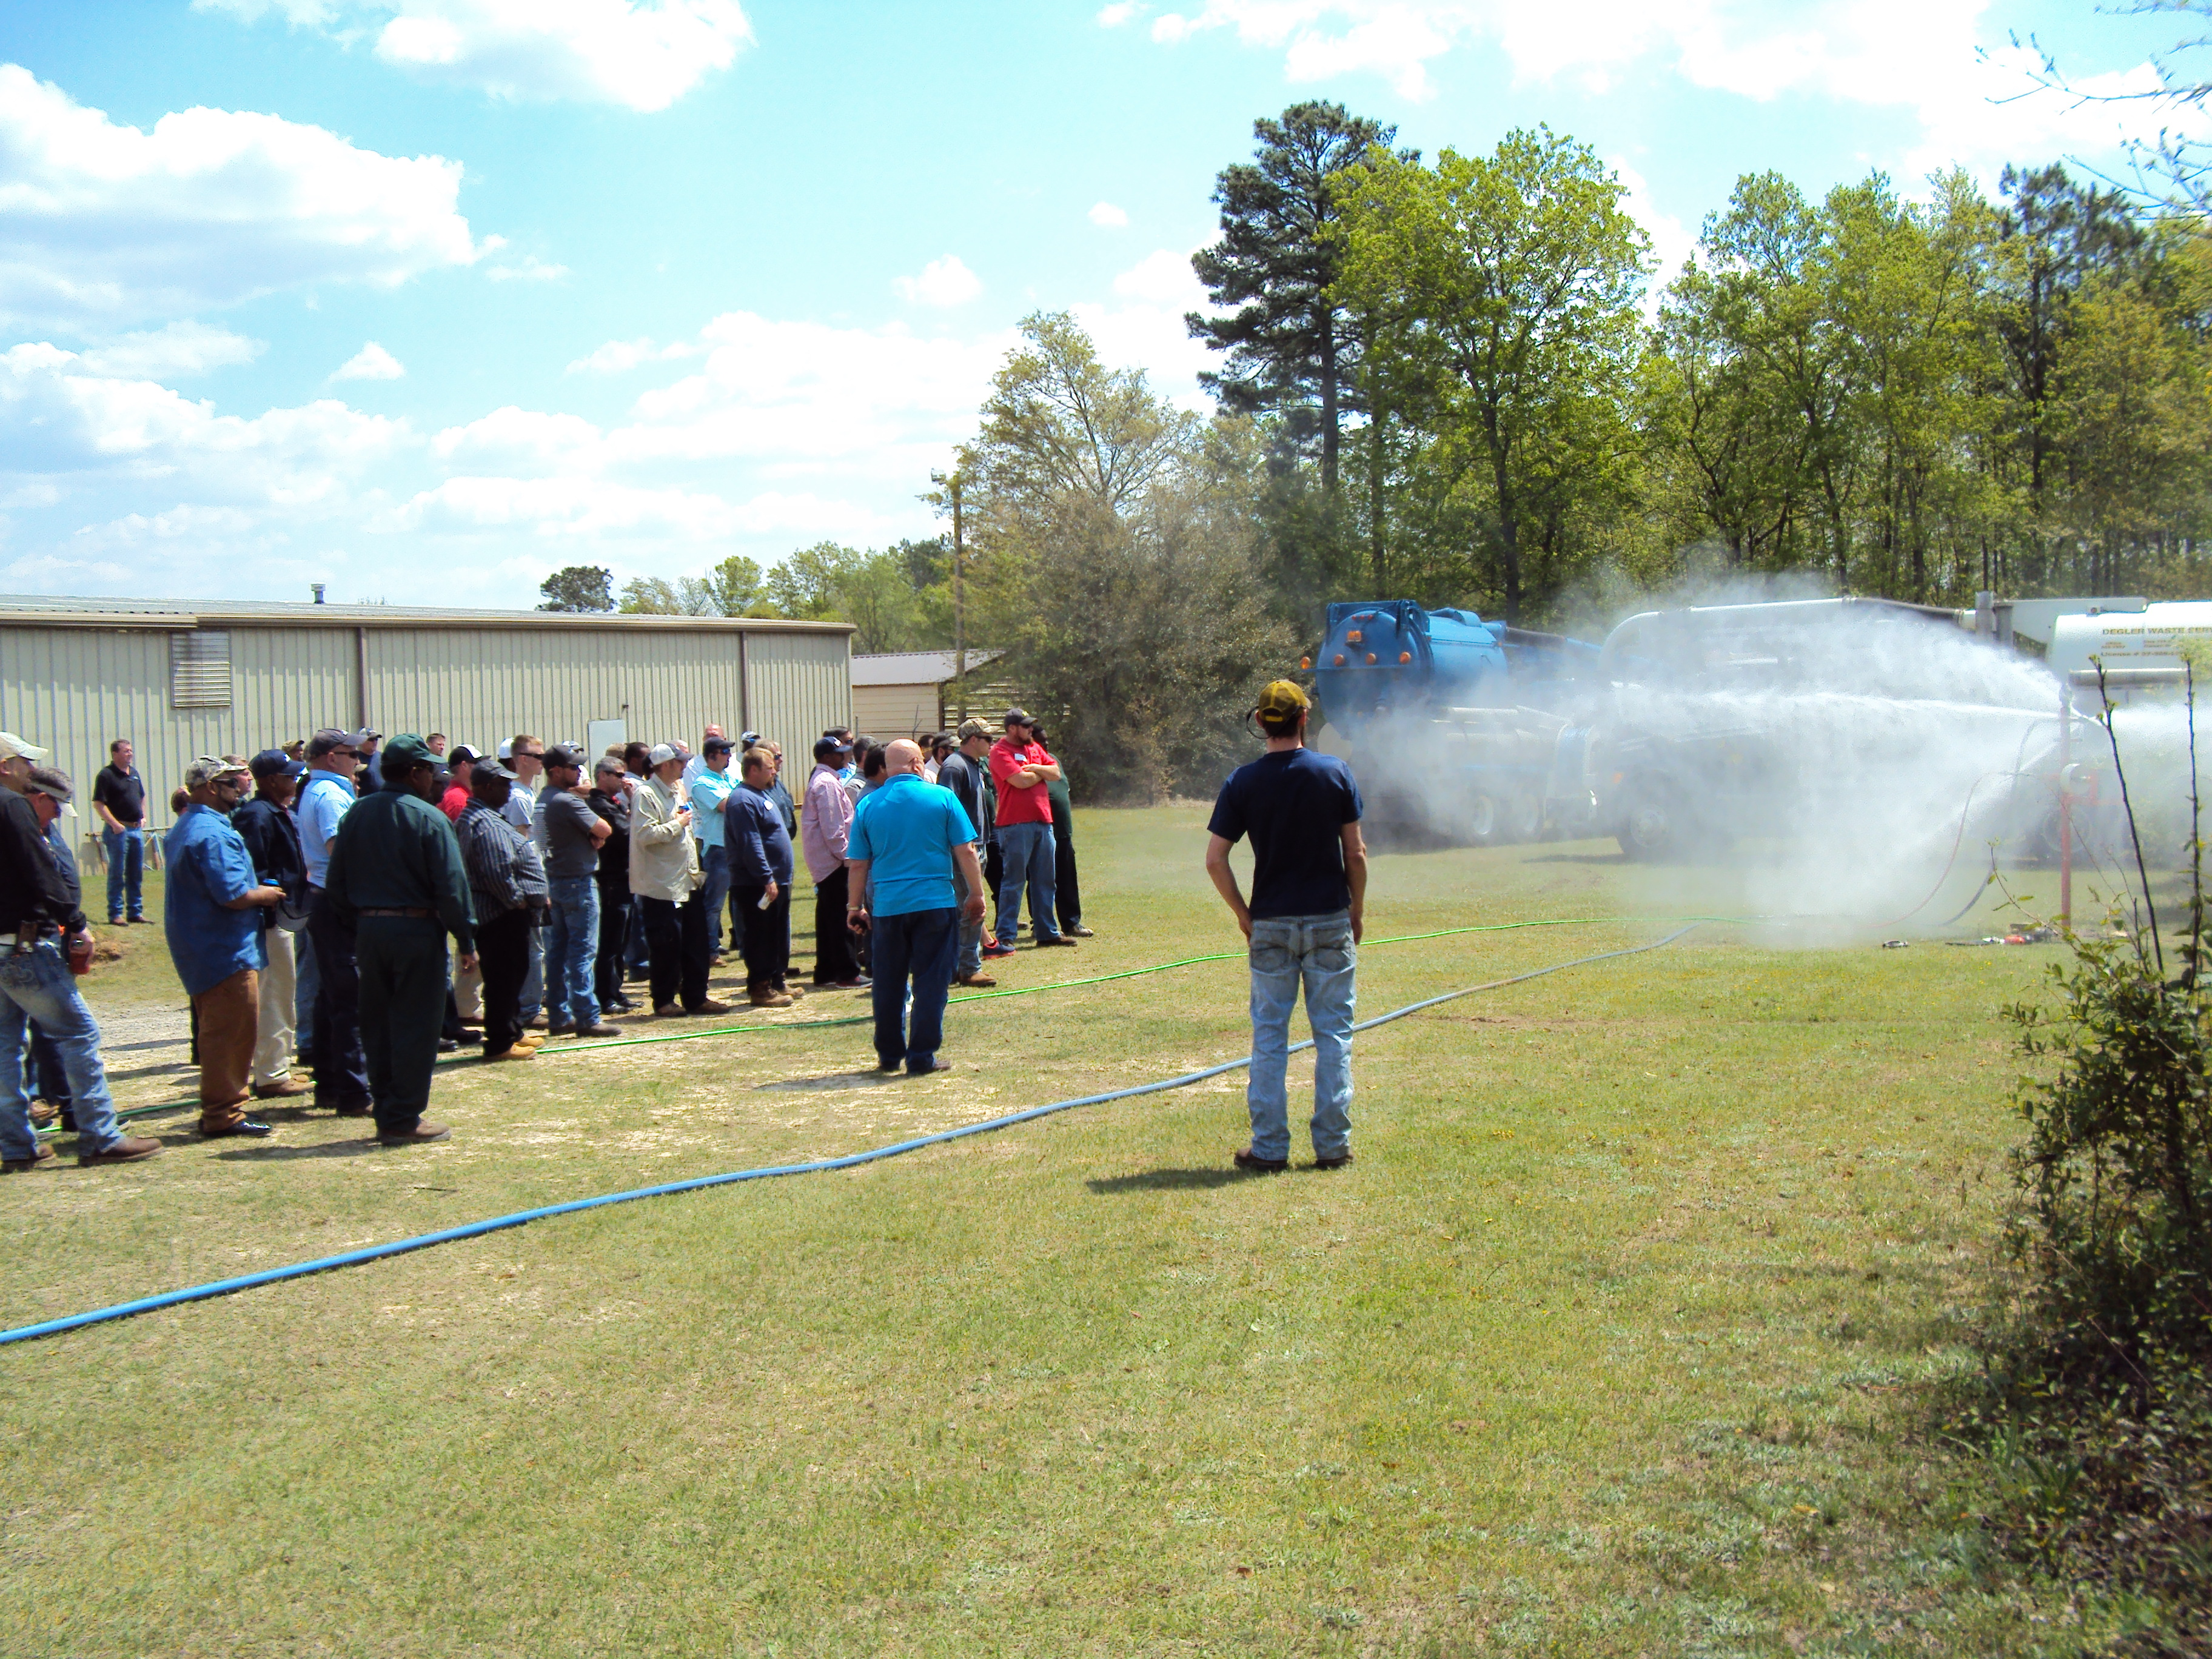 Nozzle Demonstrations